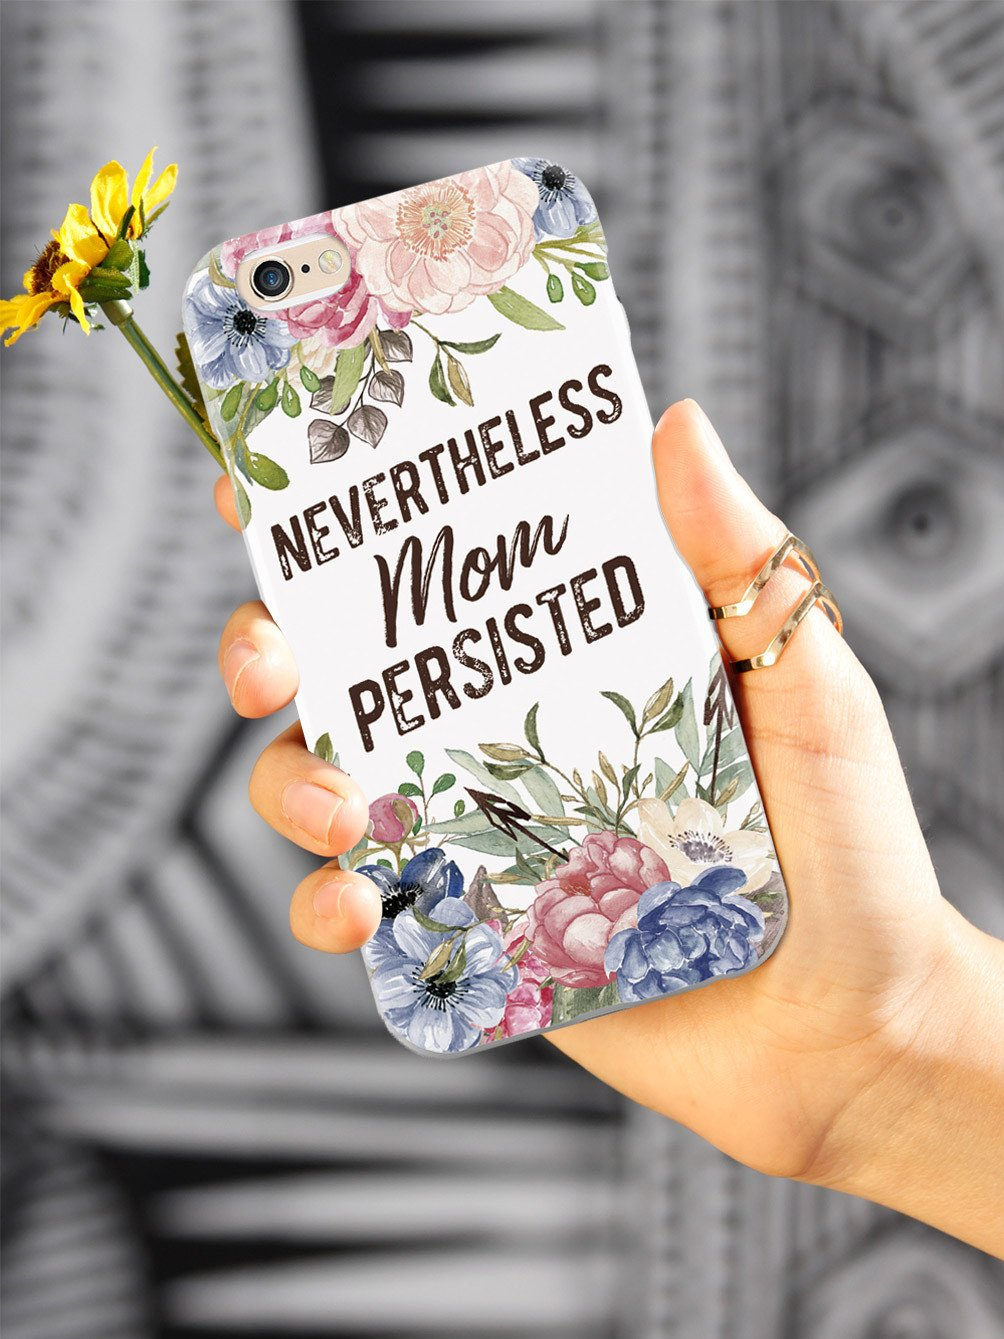 Neverthless, Mom Persisted - White Case - pipercleo.com